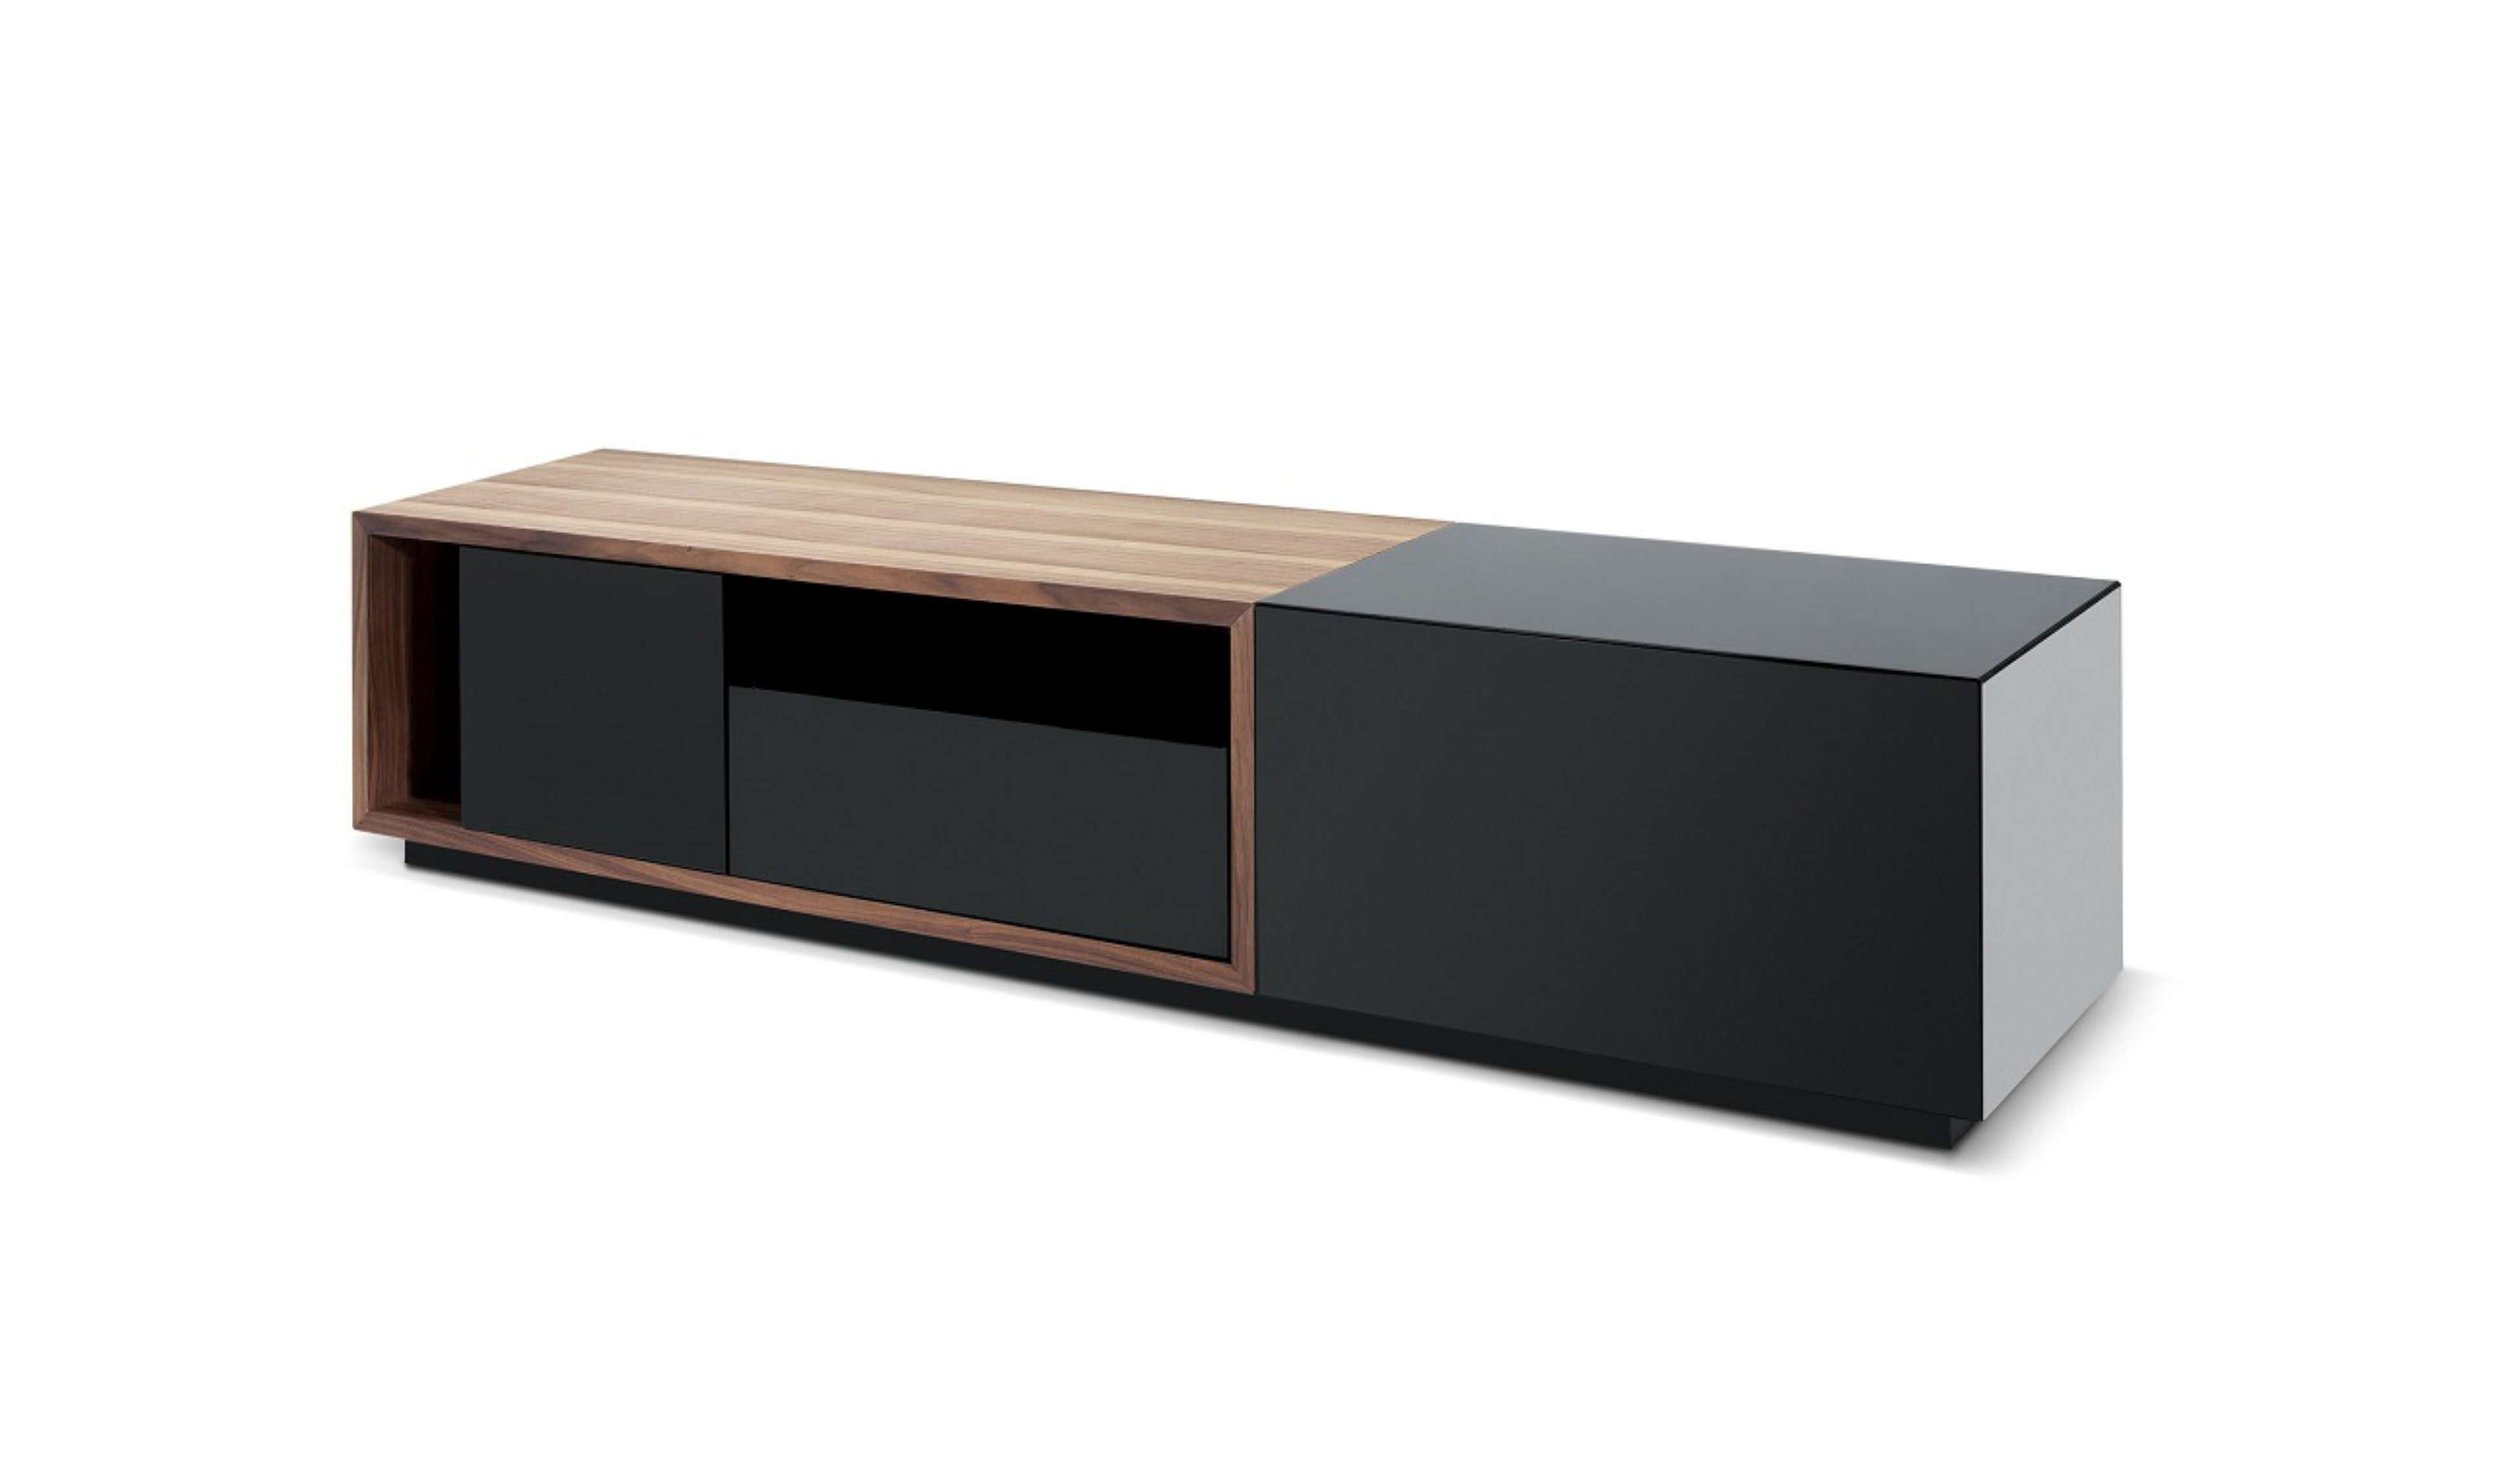 Especial Tv Cabinets Tv Stands Stores L Shaped Desk Tv Cabinets Tv With Regard To L Shaped Tv Stands (View 8 of 15)